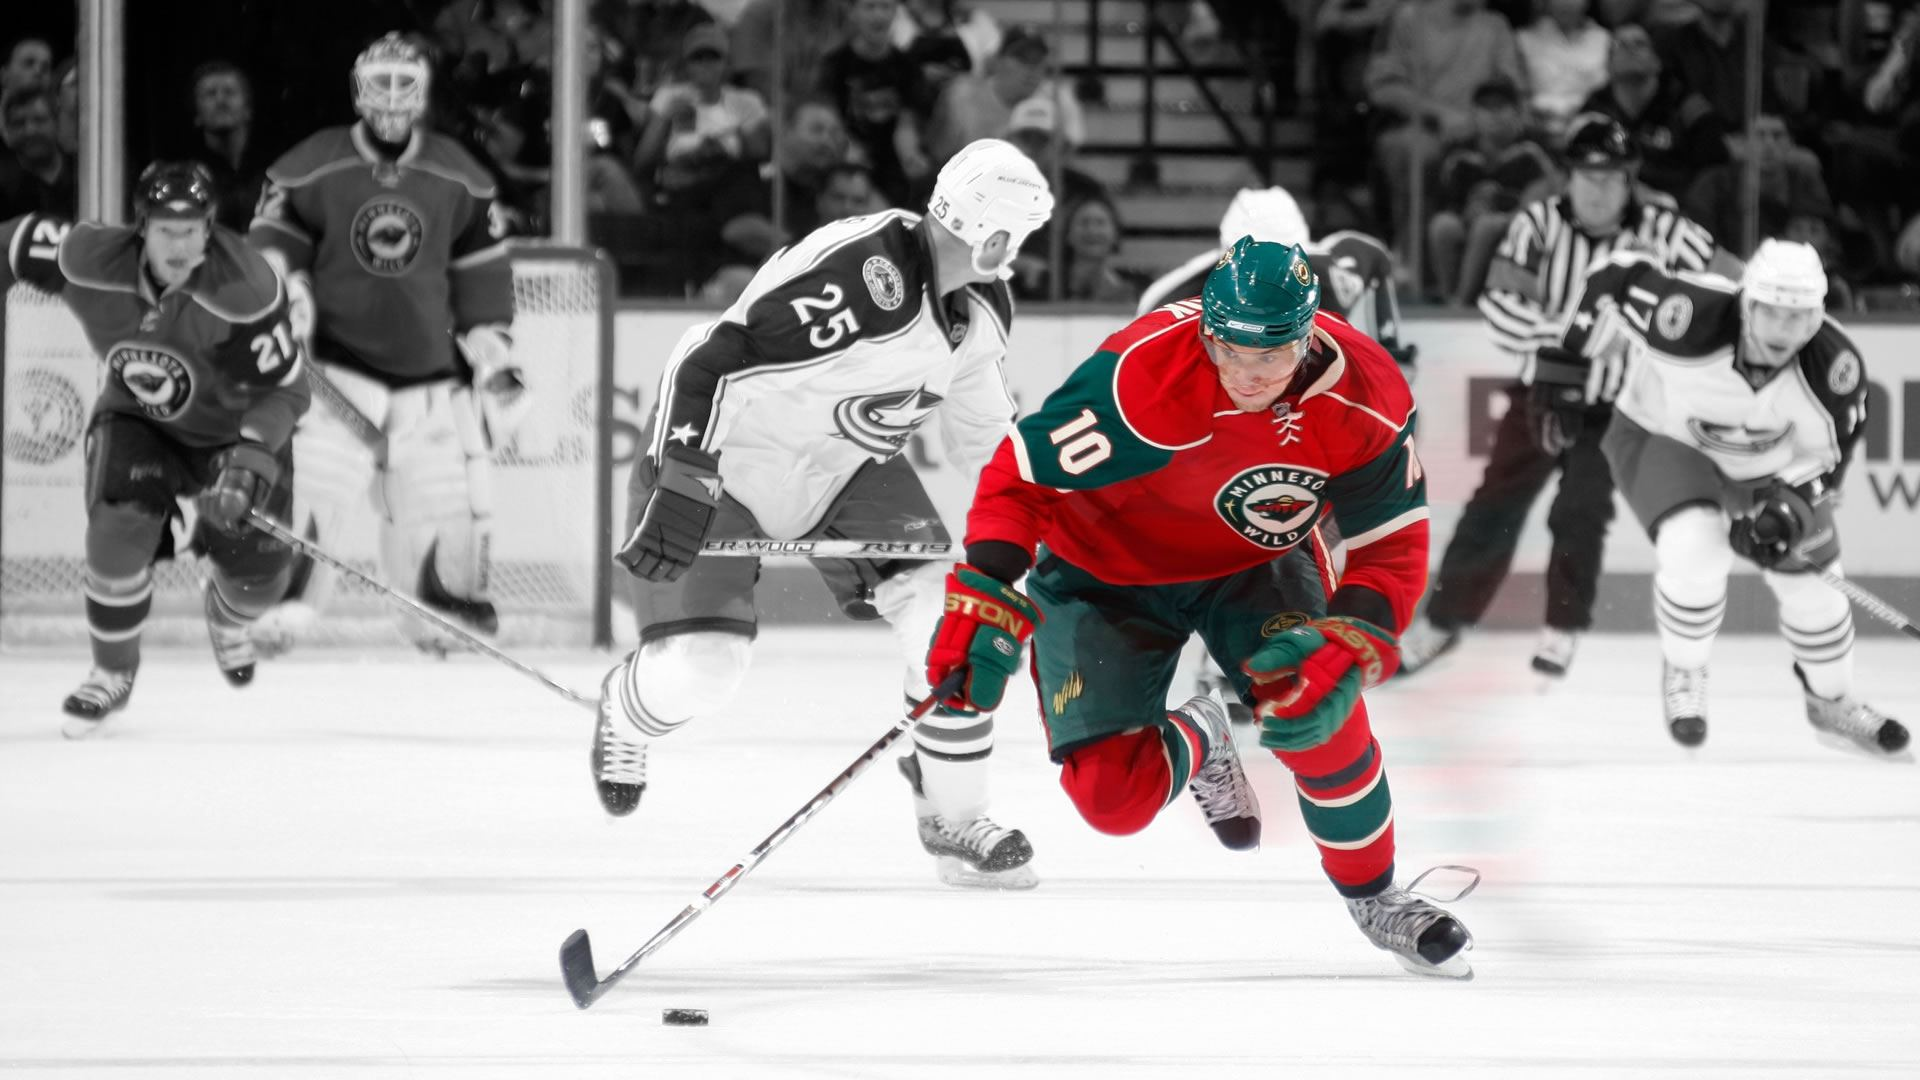 minesota-wild-ice-hockey_1920x1080_95-hd